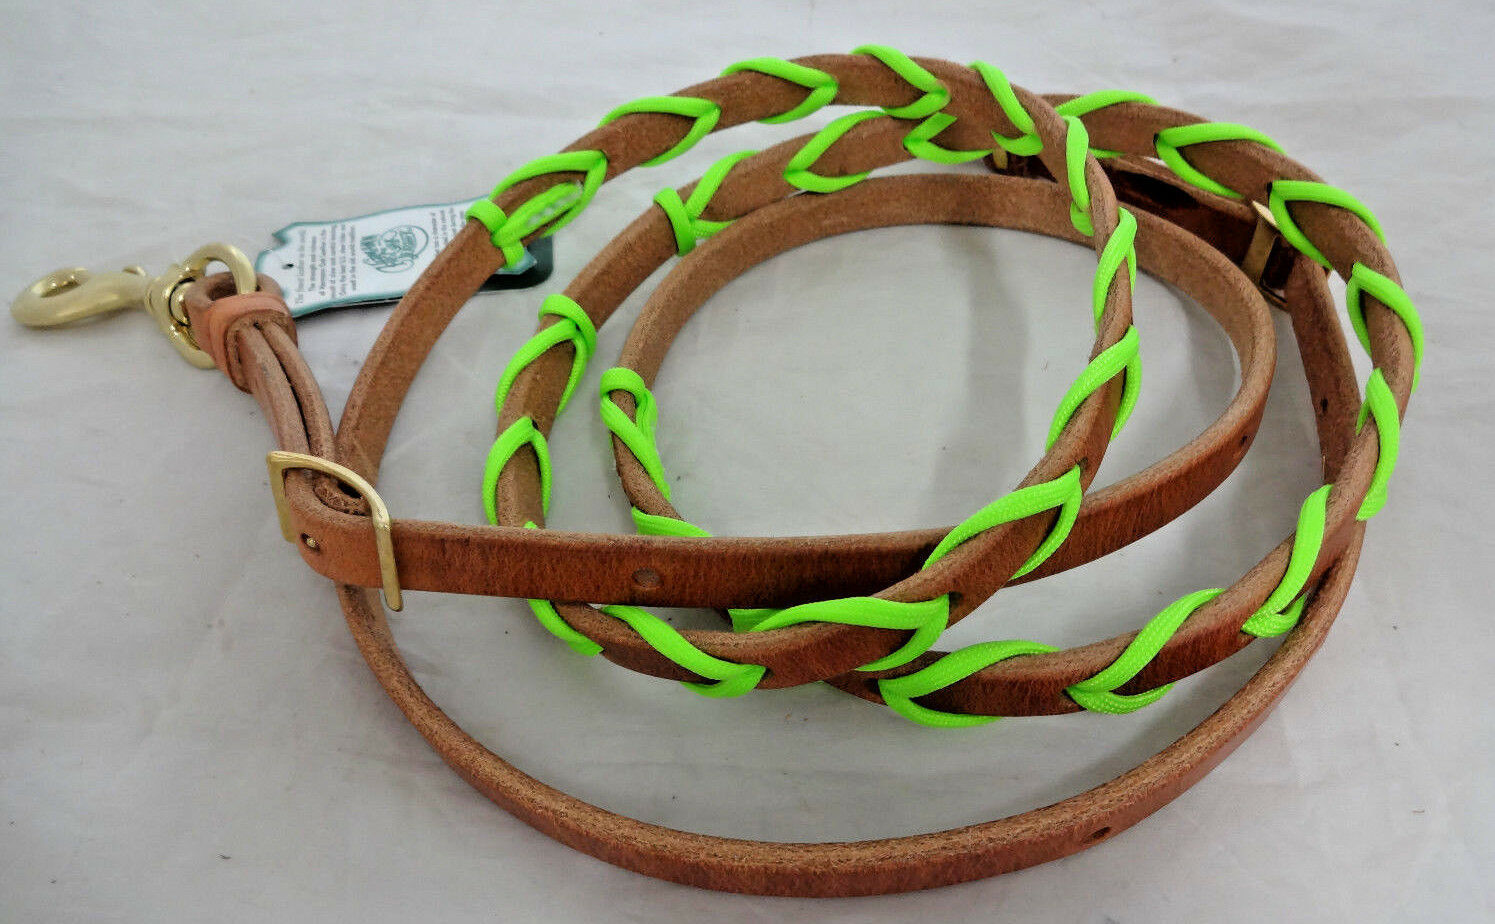 Barrel Roping Rein Hermann Oak Harness Leather Paracord Laced Lime verde Horse